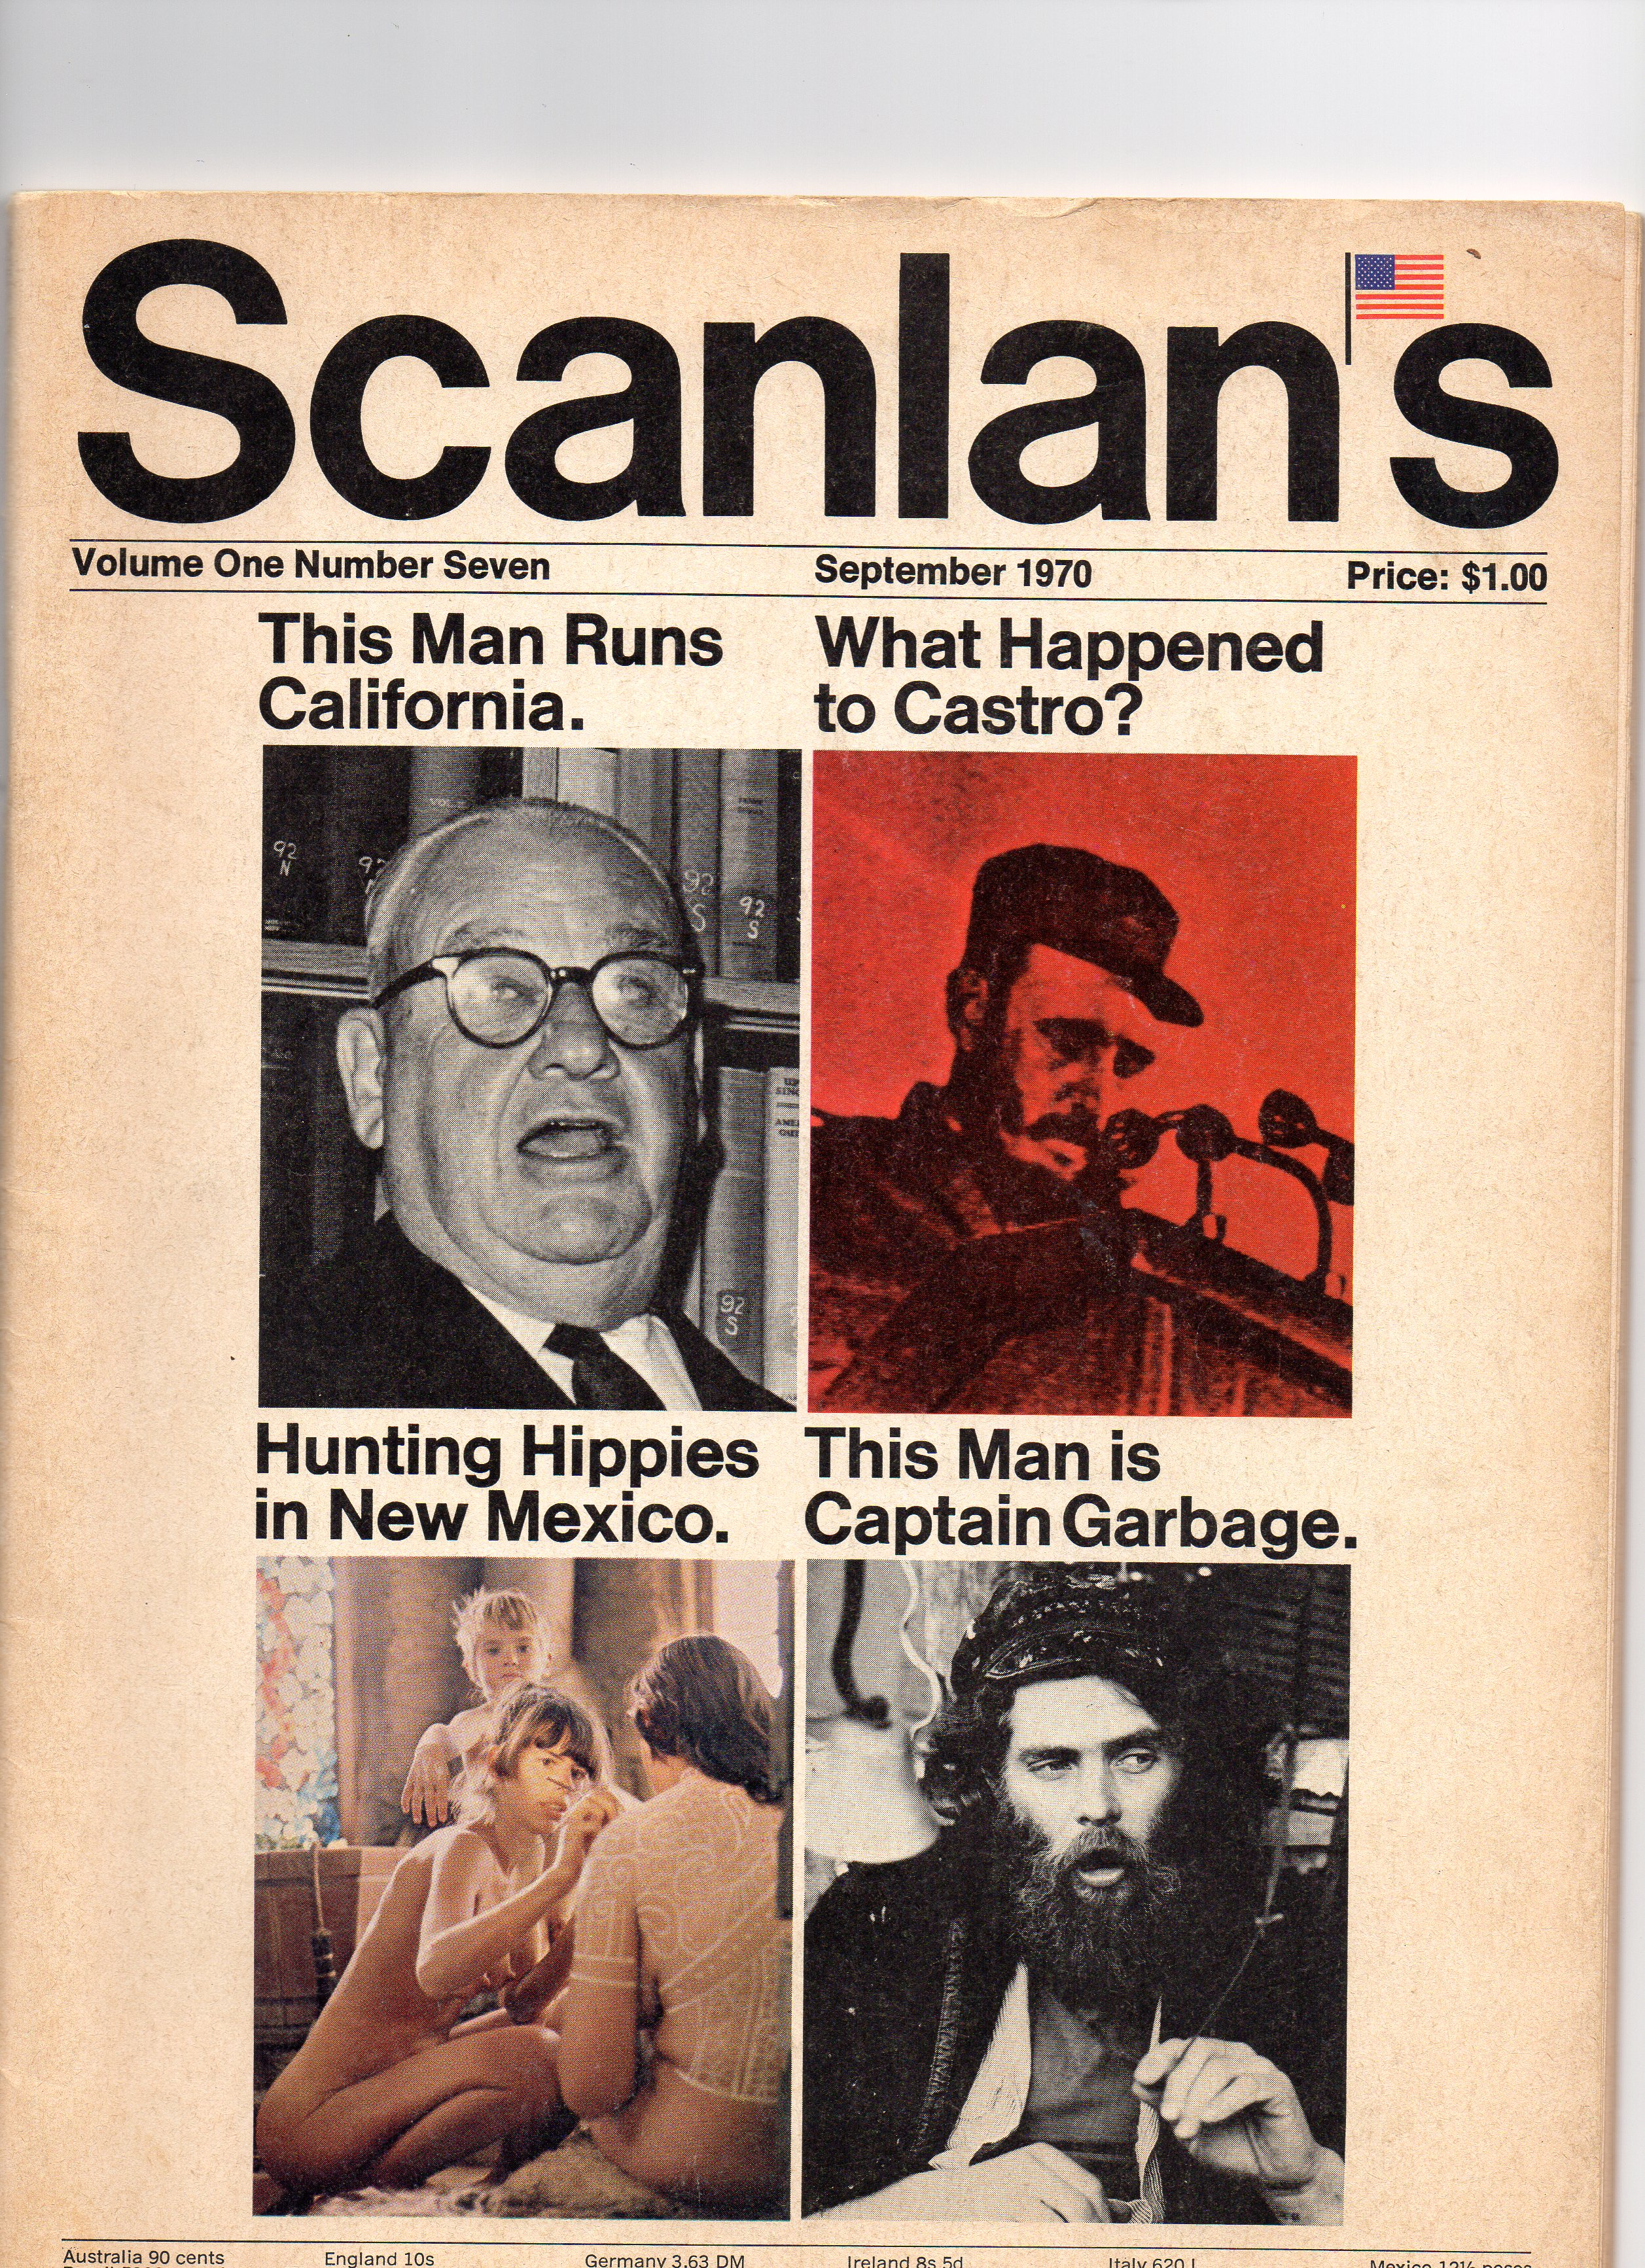 Scanlan's Monthly 7, September 1970, from my personal collection